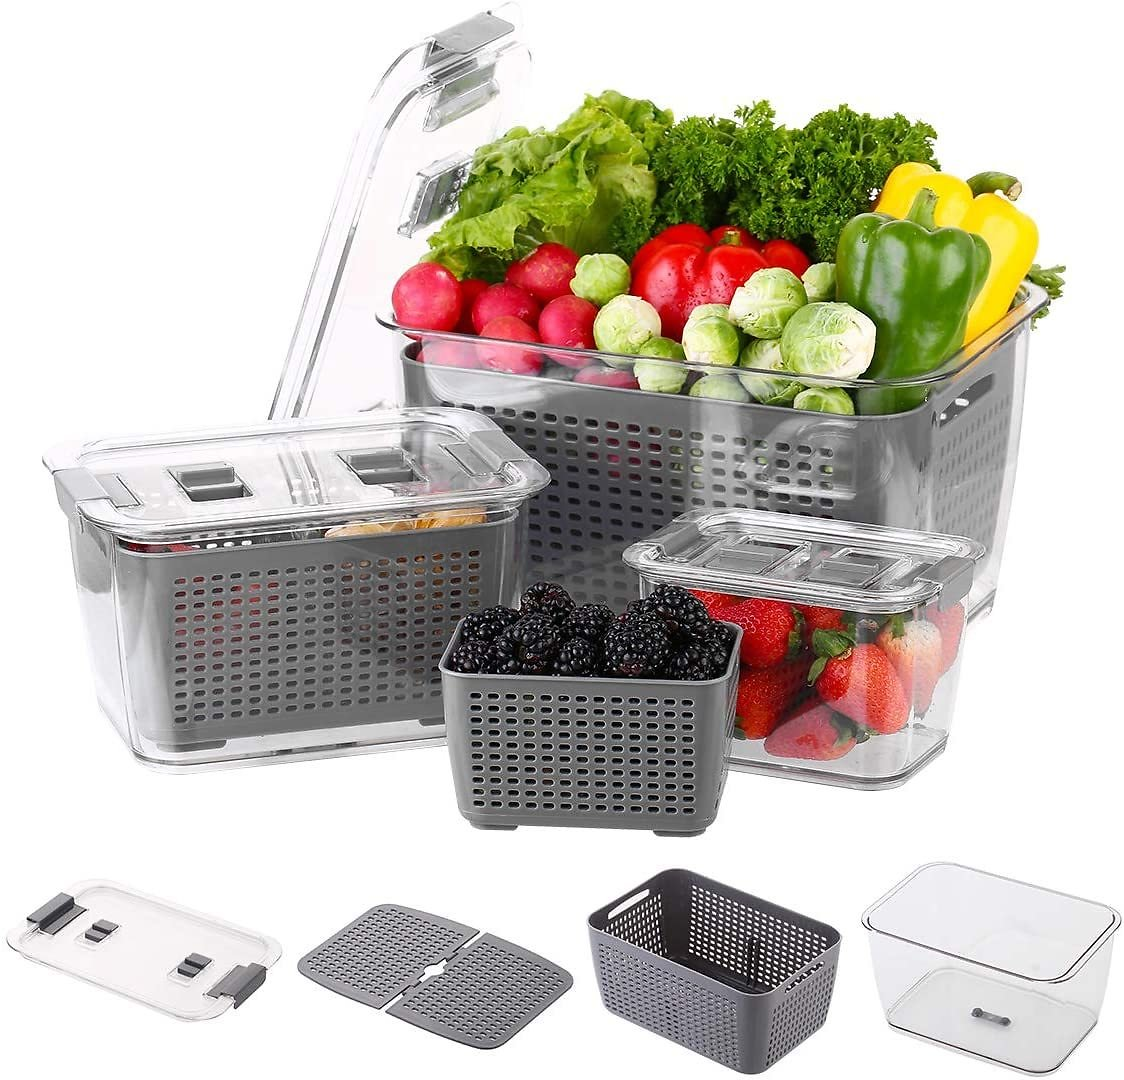 Mrt Pro Fresh Produce Vegetable Fruit Storage Containers - Fridge Food Storage Containers - Refrigerator Organizer Bins - Produce Saver Storage Containers - Draining Crisper with Strainers(3 Pack)